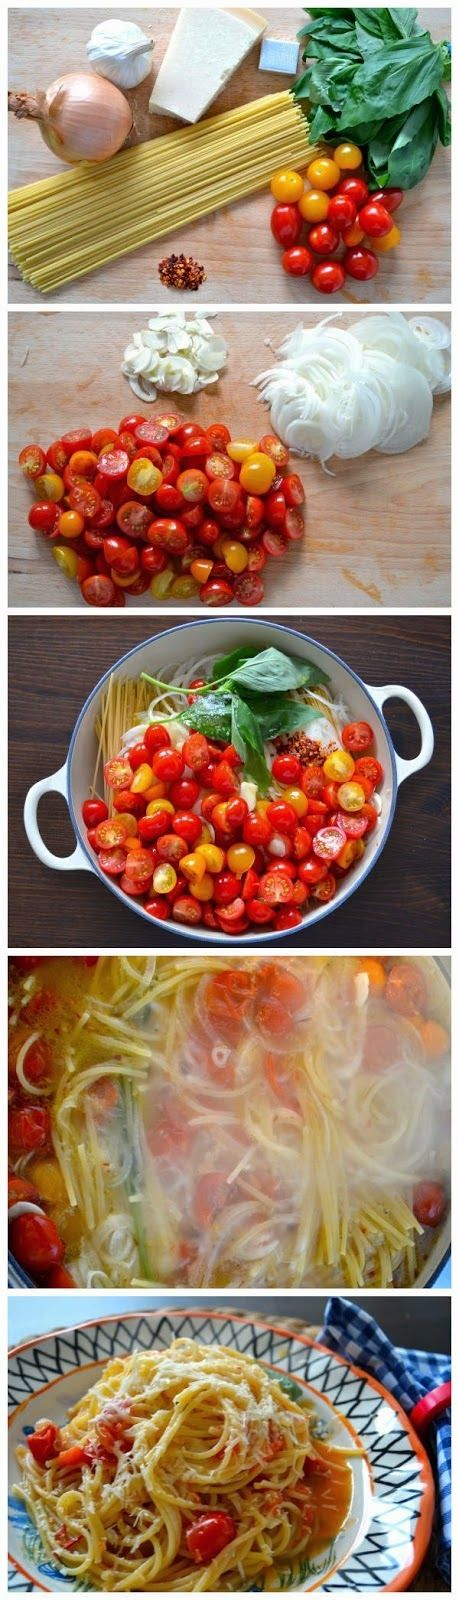 How To Make One Pot Pasta | Cooking Blog